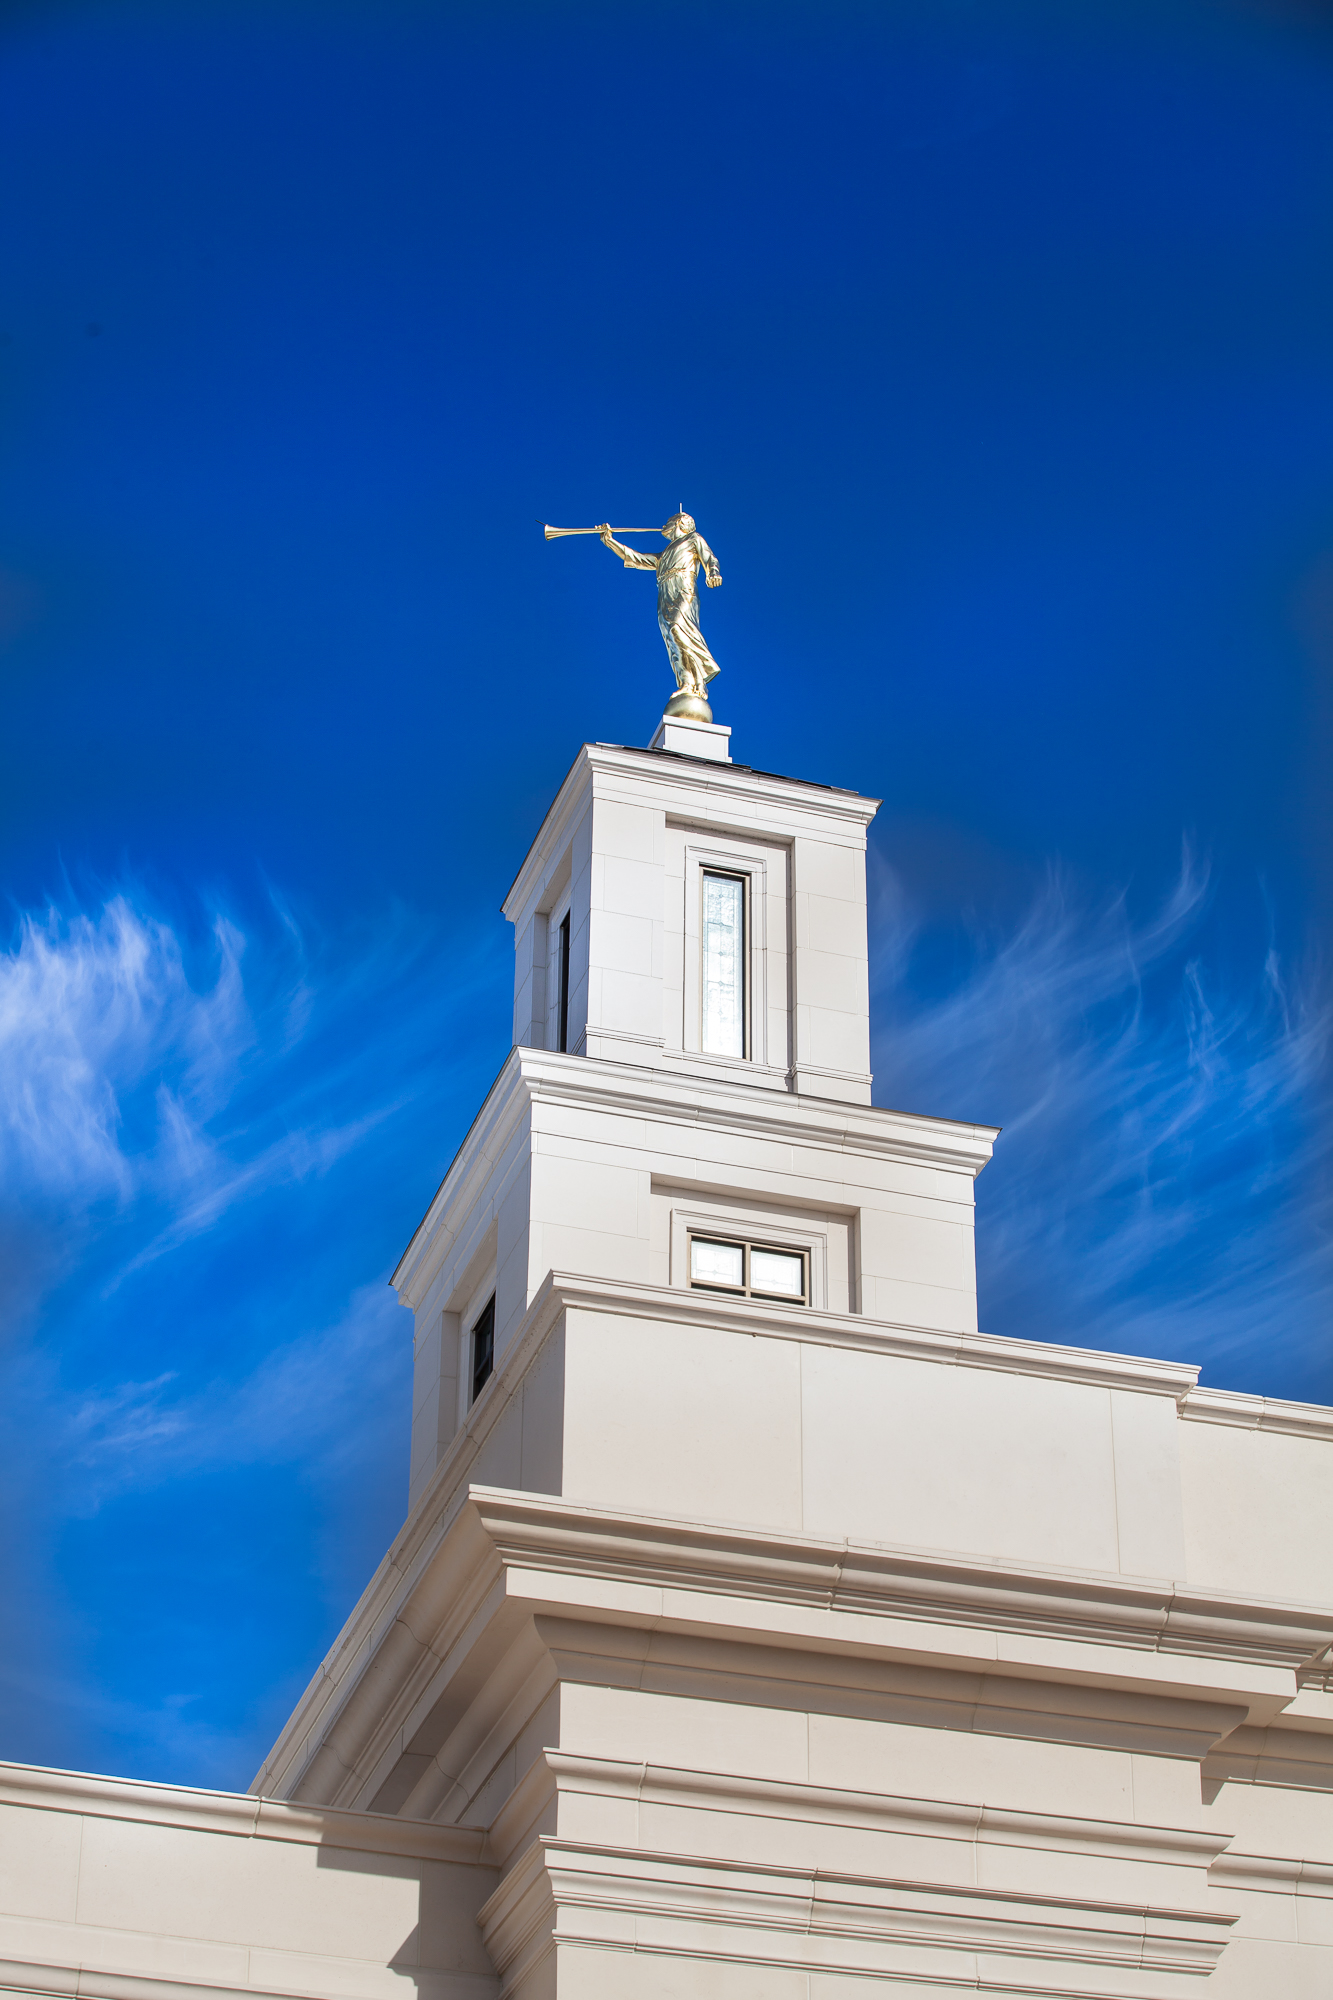 The Baton Rouge Louisiana Temple under bright blue skies on Saturday Nov. 16, 2019, prior to its rededication.